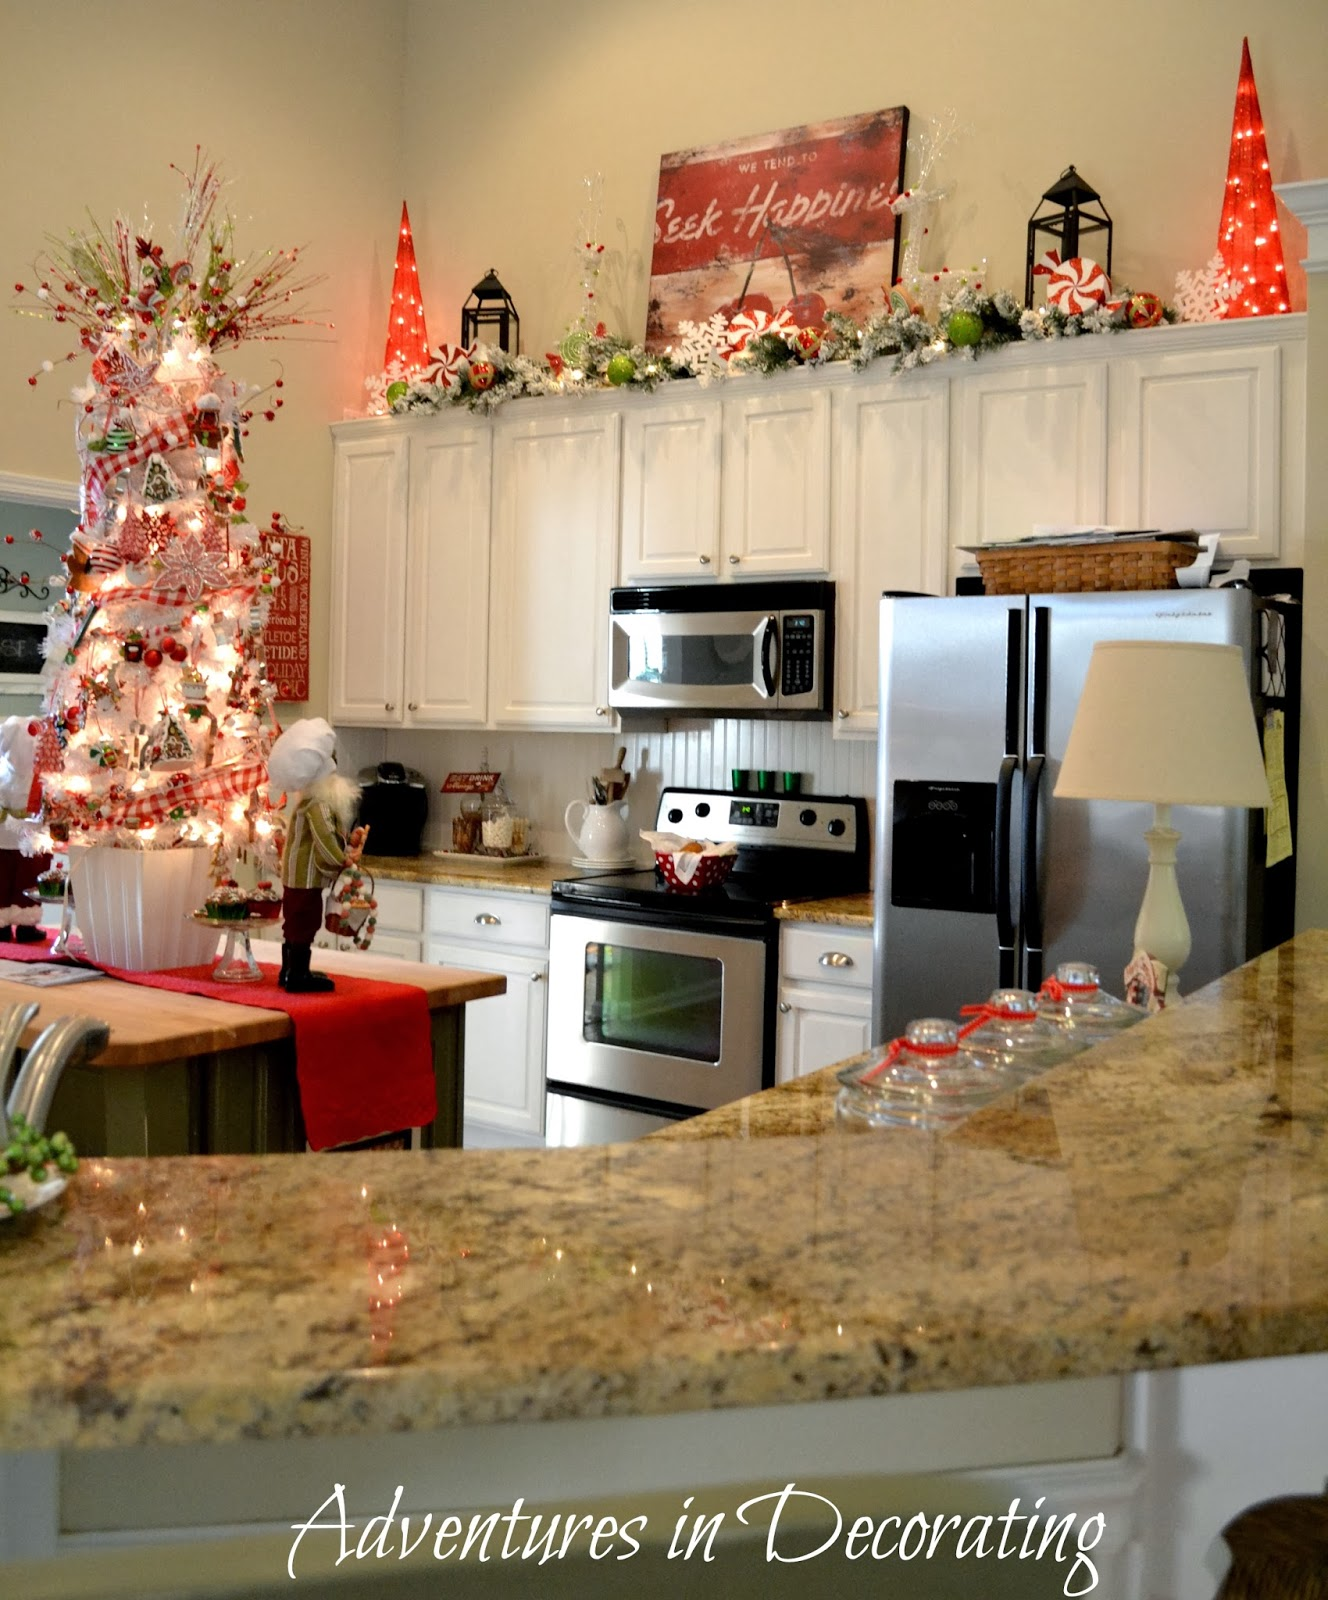 Kitchen Decorations For Above Cabinets: Adventures In Decorating: Our Christmas Great Room And